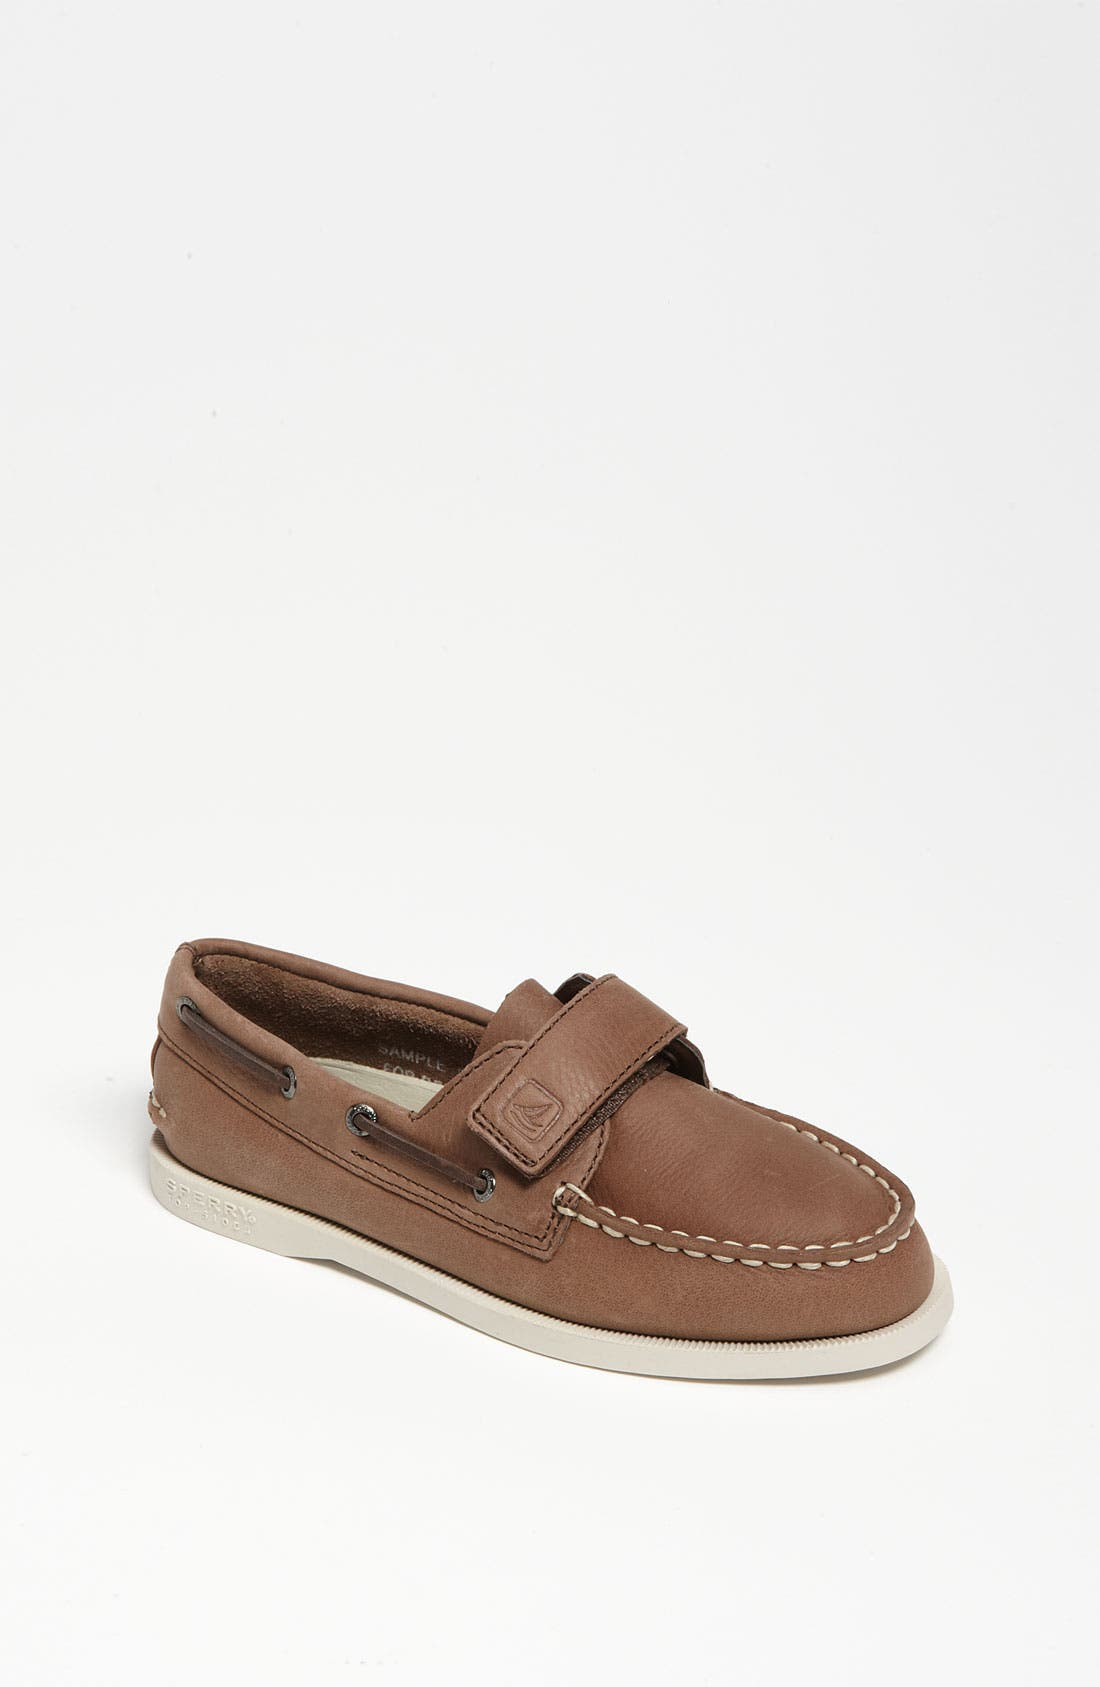 Main Image - Sperry Top-Sider® Kids 'Authentic Original' Boat Shoe (Walker & Toddler)